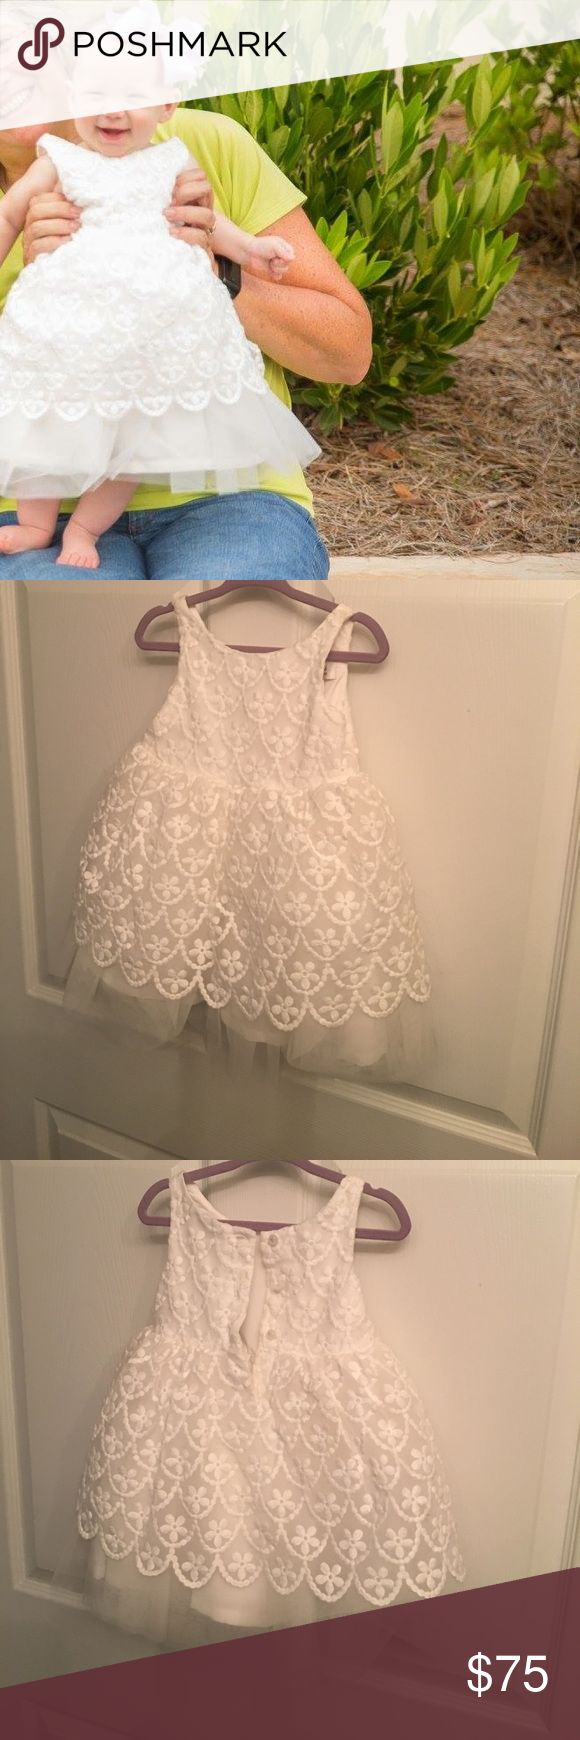 Janie and jack beautiful white formal dress Only worn once for six month pictures great condition!! Retails for210$ new beautiful dress Janie and Jack Dresses Formal